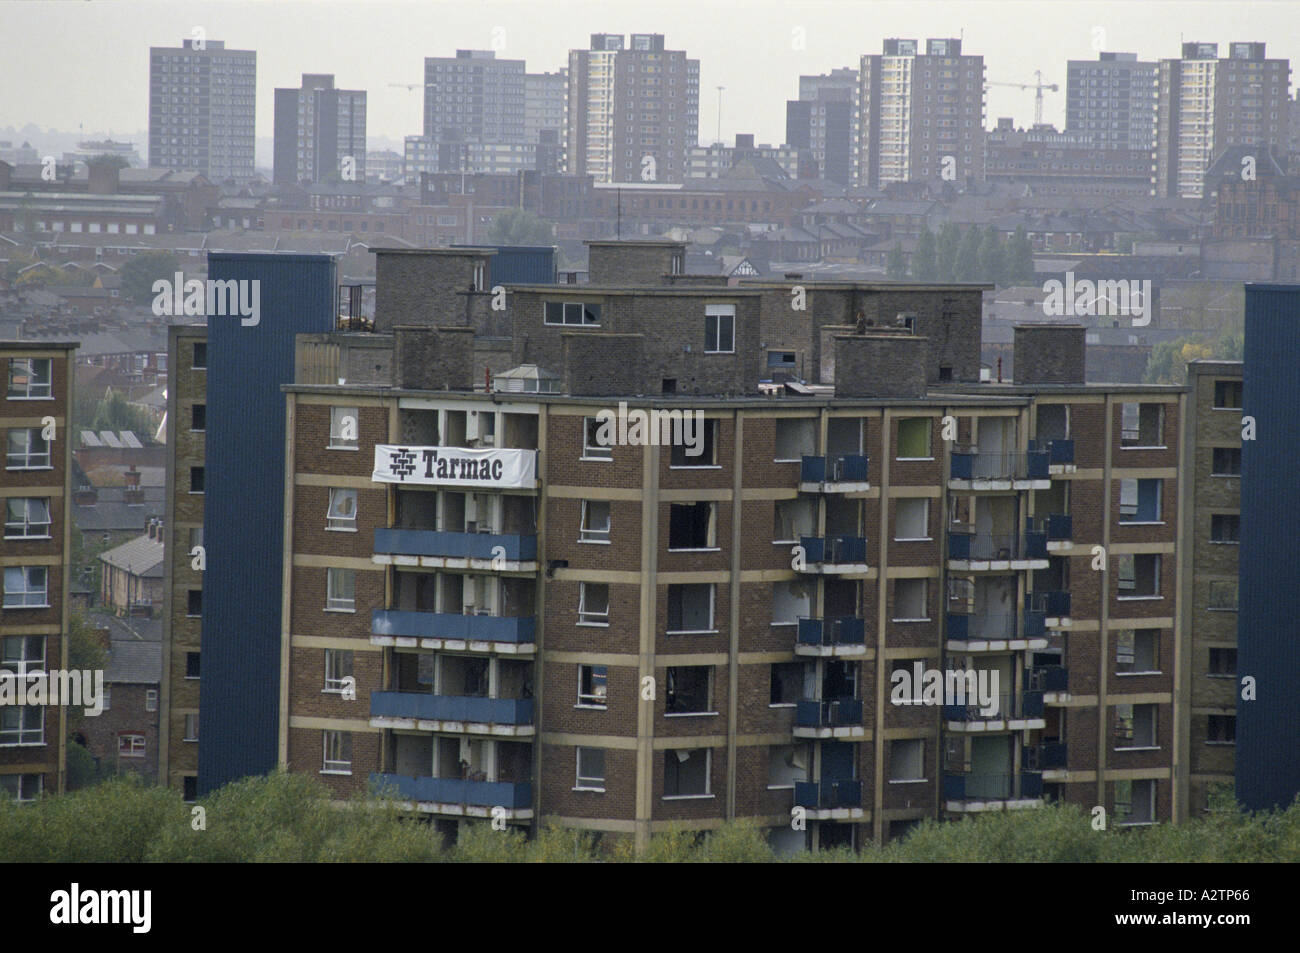 emptied tower block waiting to be demolished skyline with high rise housing blocks as background manchester - Stock Image